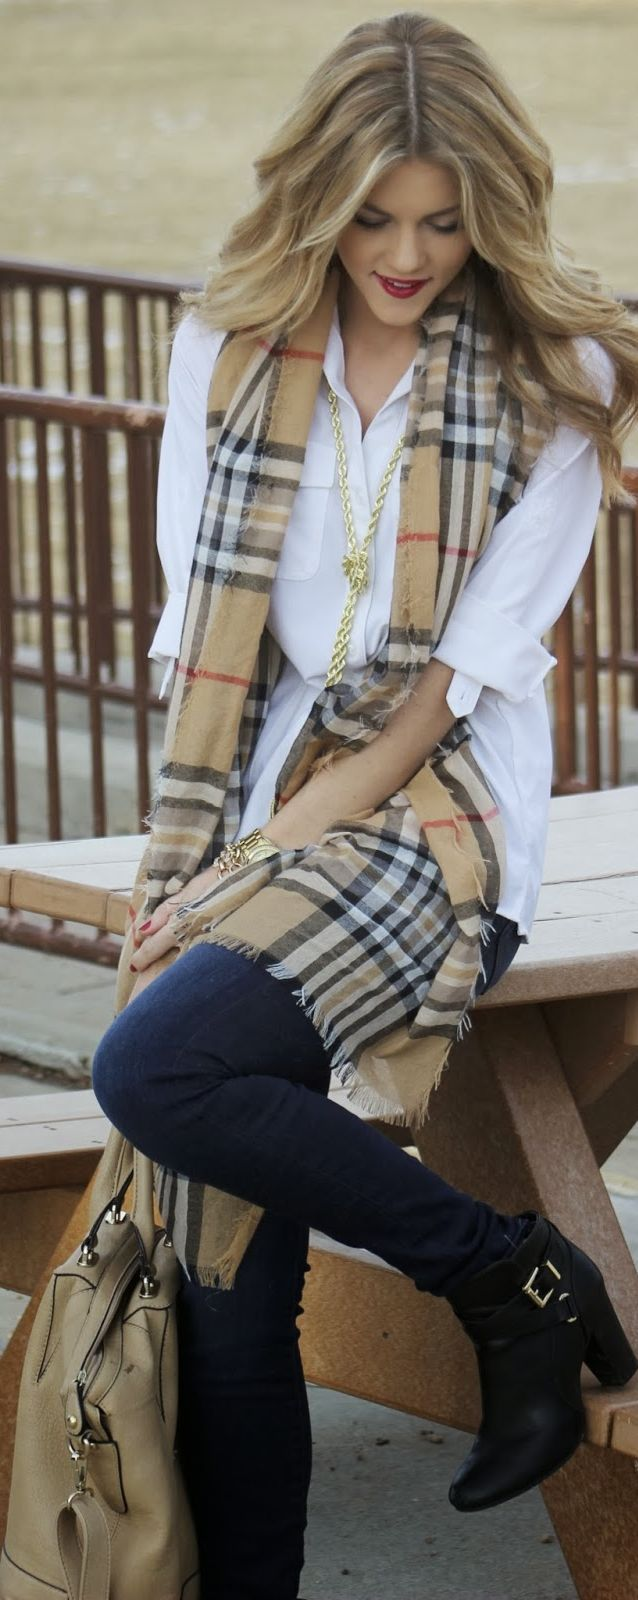 Fashionable look in white shirt scarf jeans pants and long boots